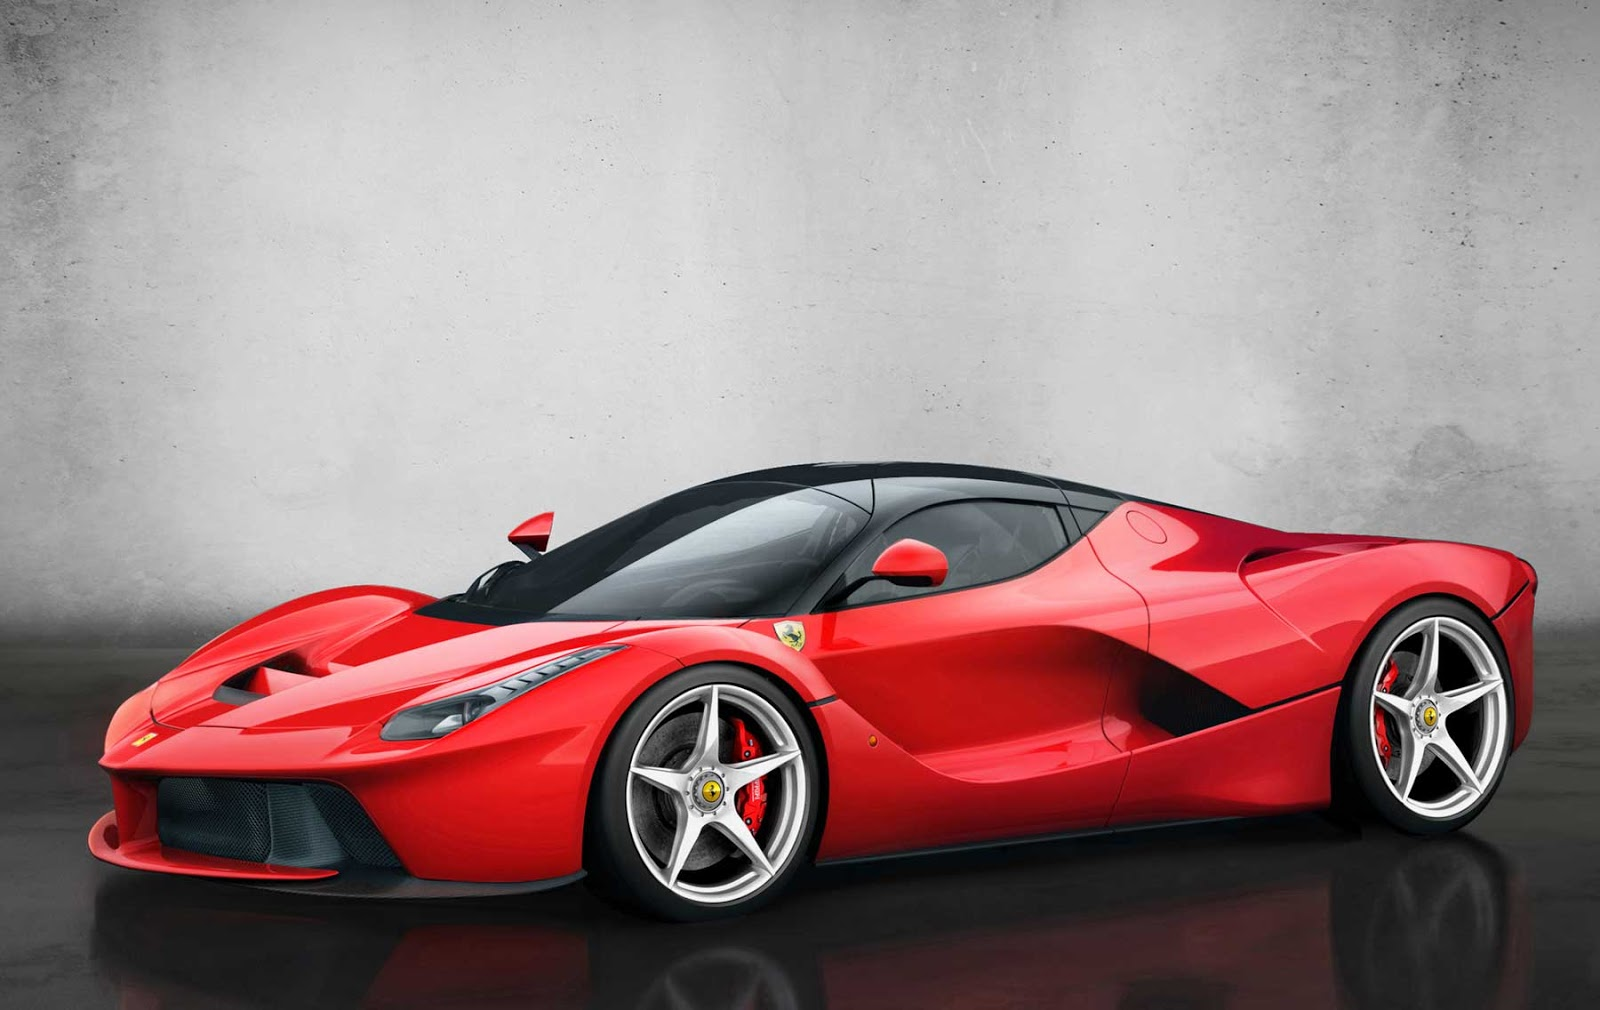 wallpapers hd de ferrari autos de alta gama. Black Bedroom Furniture Sets. Home Design Ideas